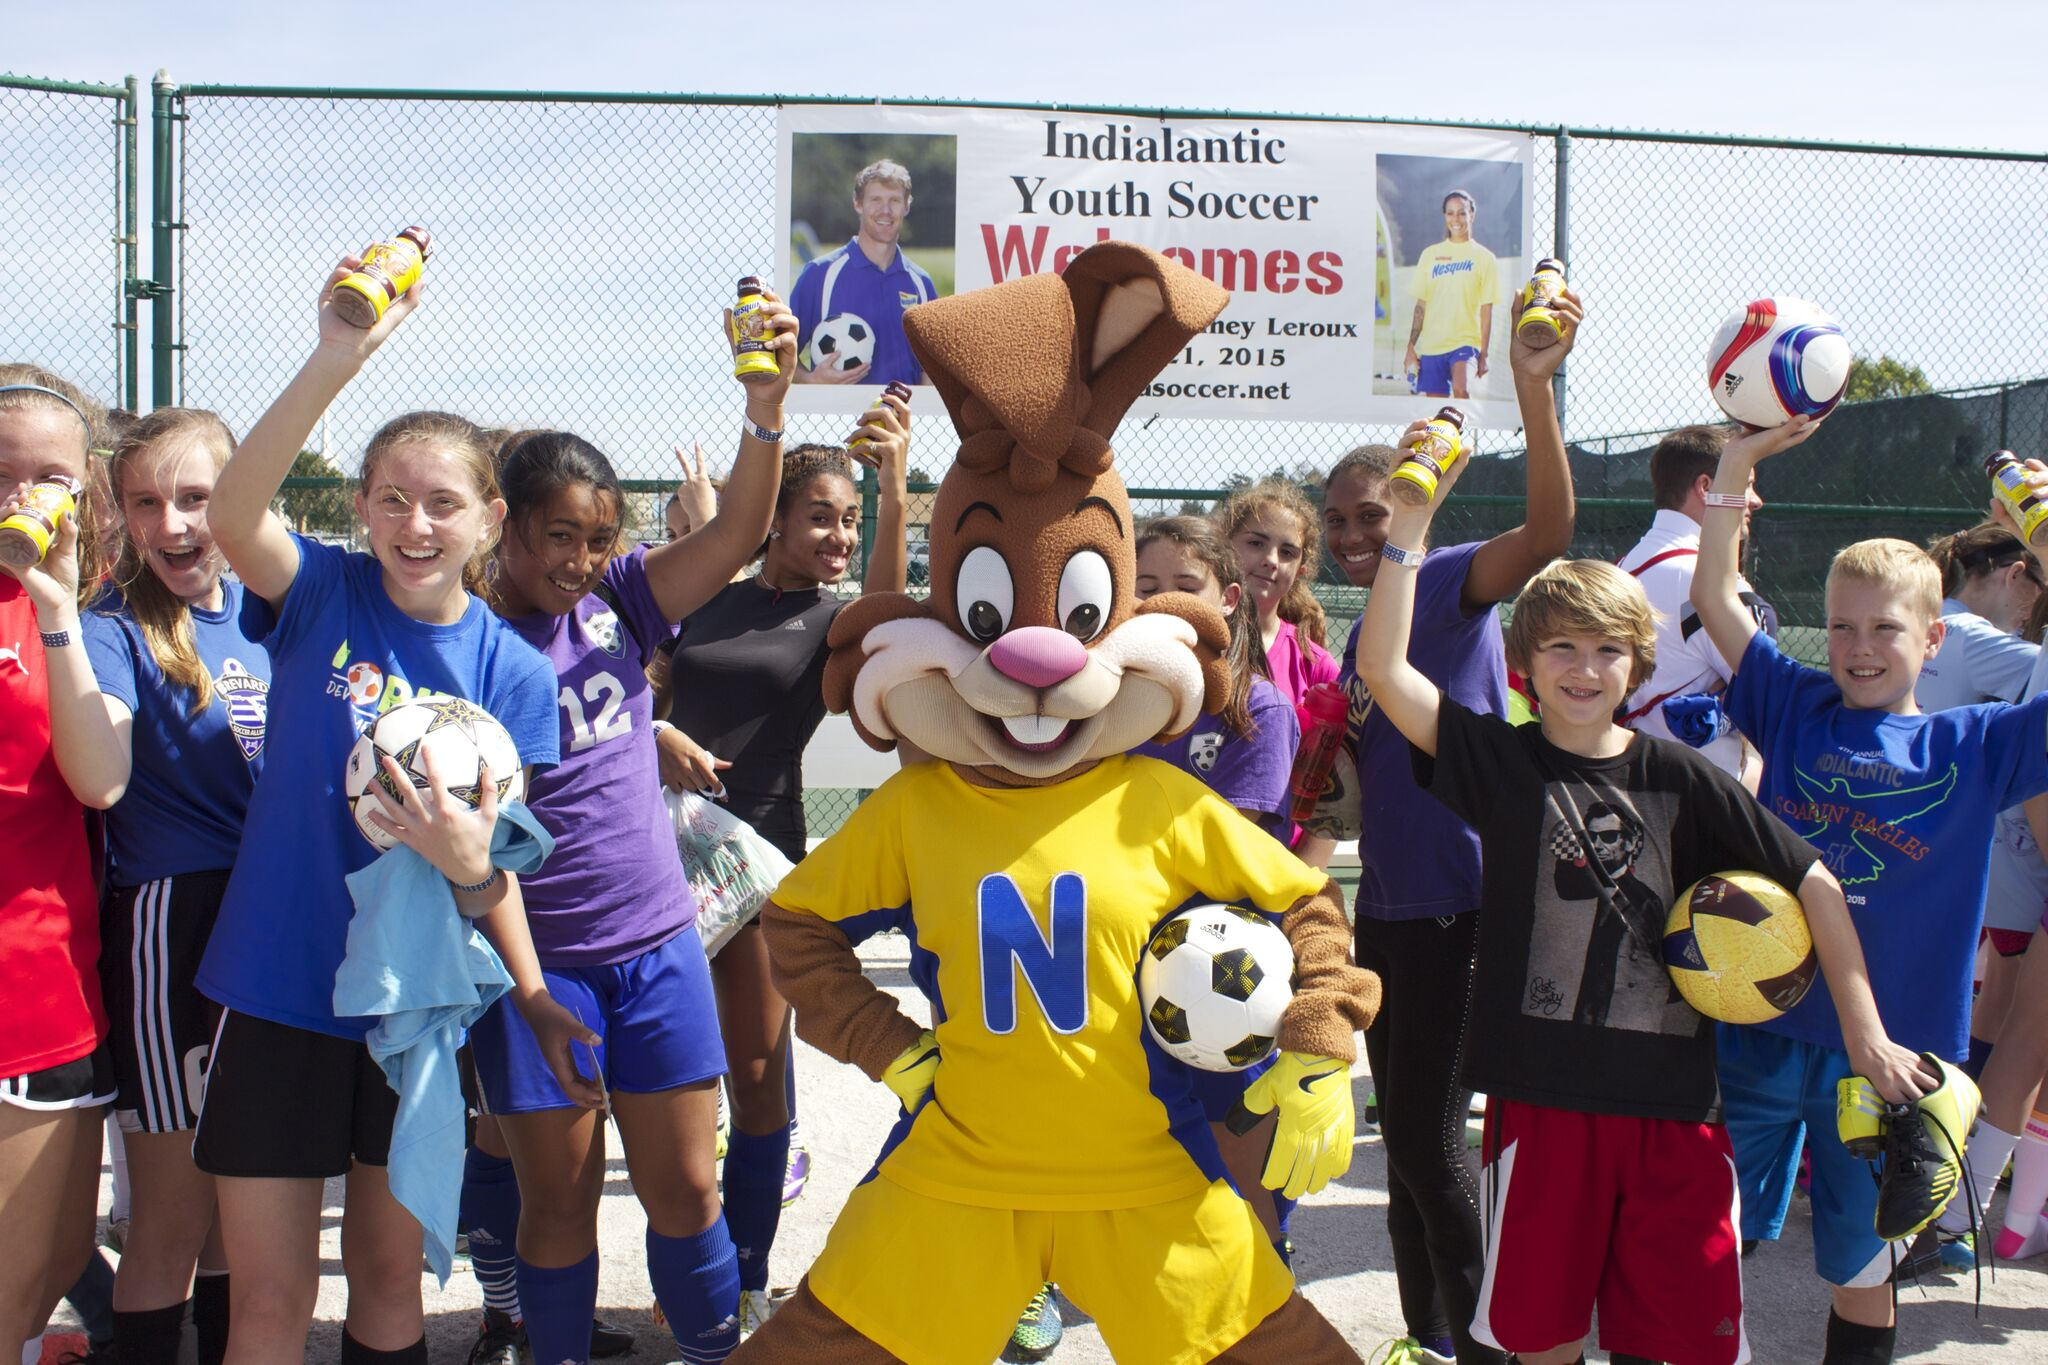 Nesquik Youth Soccer Marketing Campaign